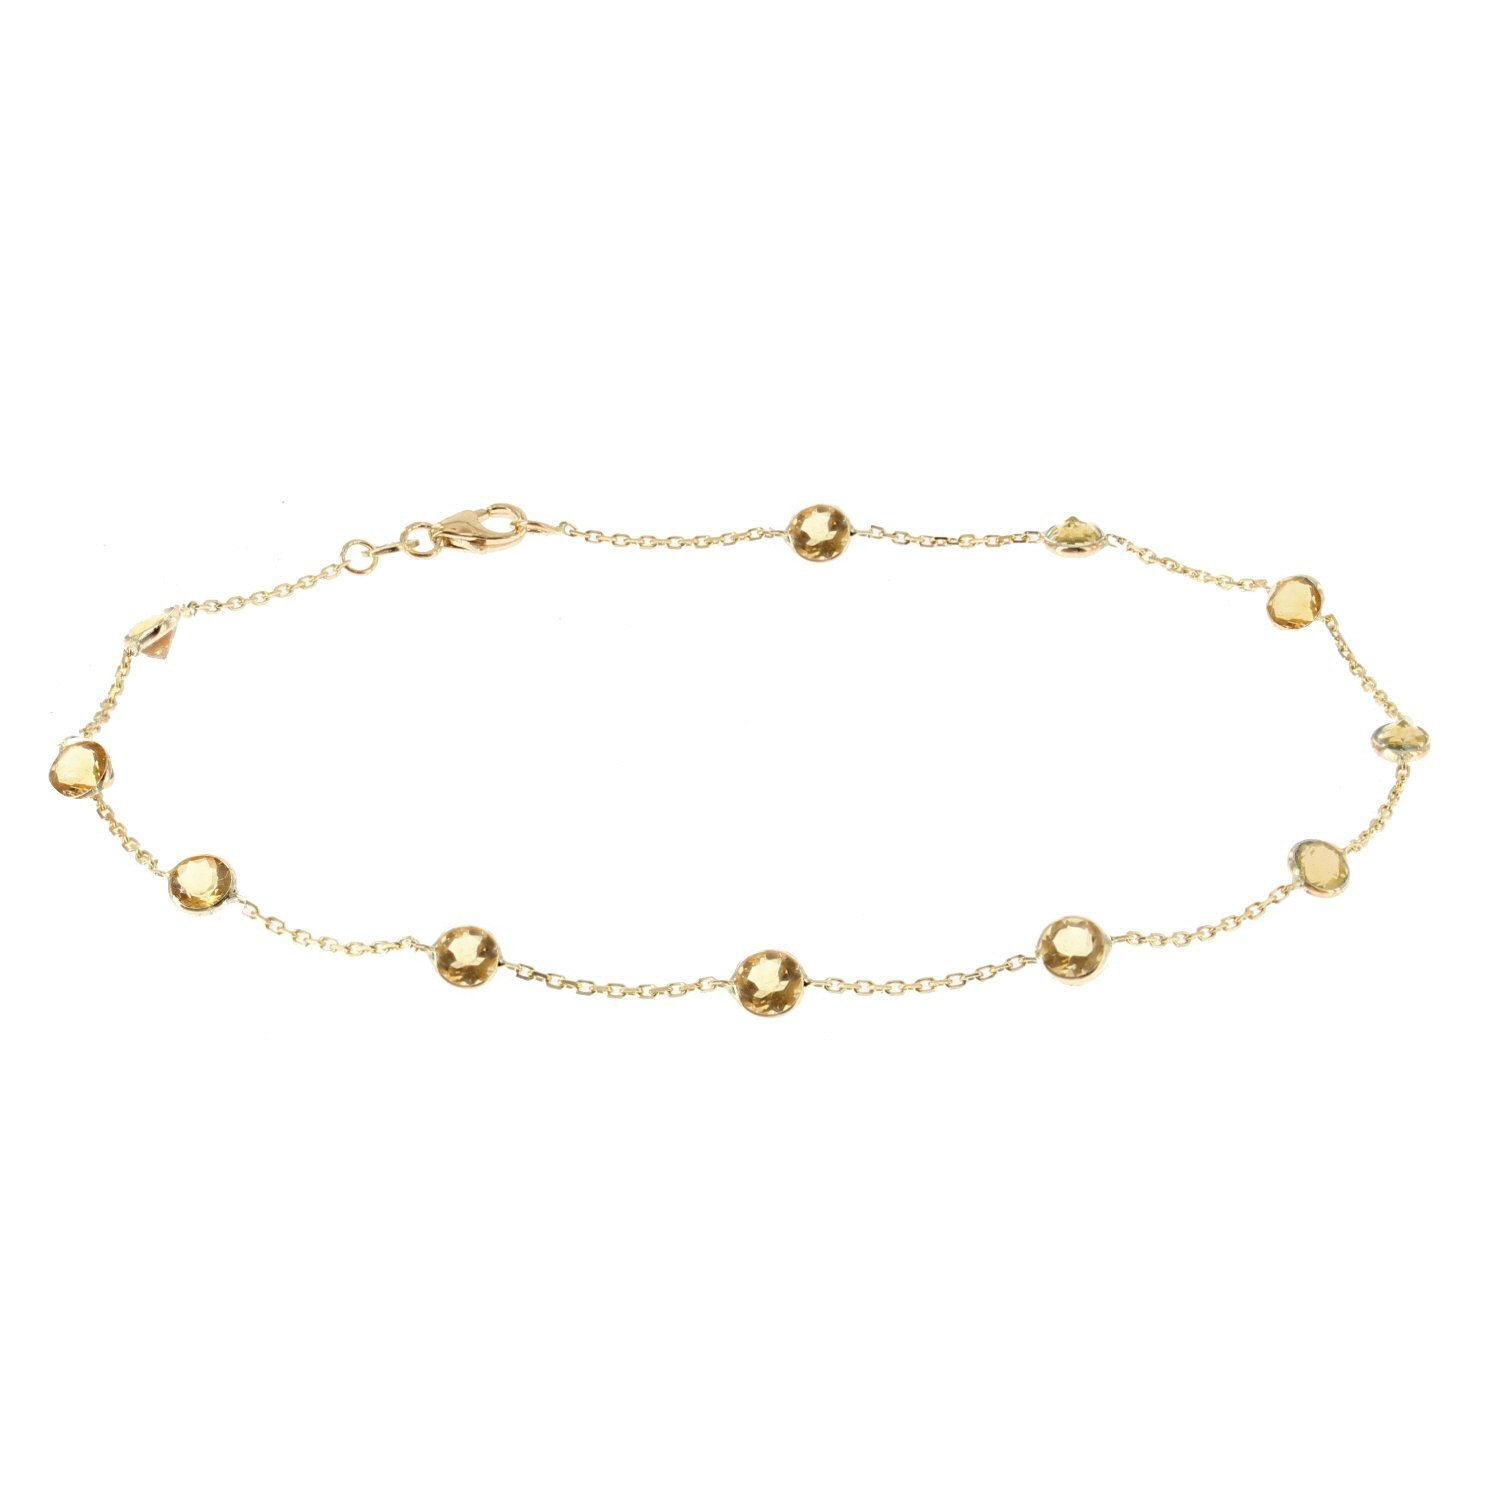 14k Yellow Gold Handmade Station Anklet With Citrine Gemstones 9 - 11 Inches